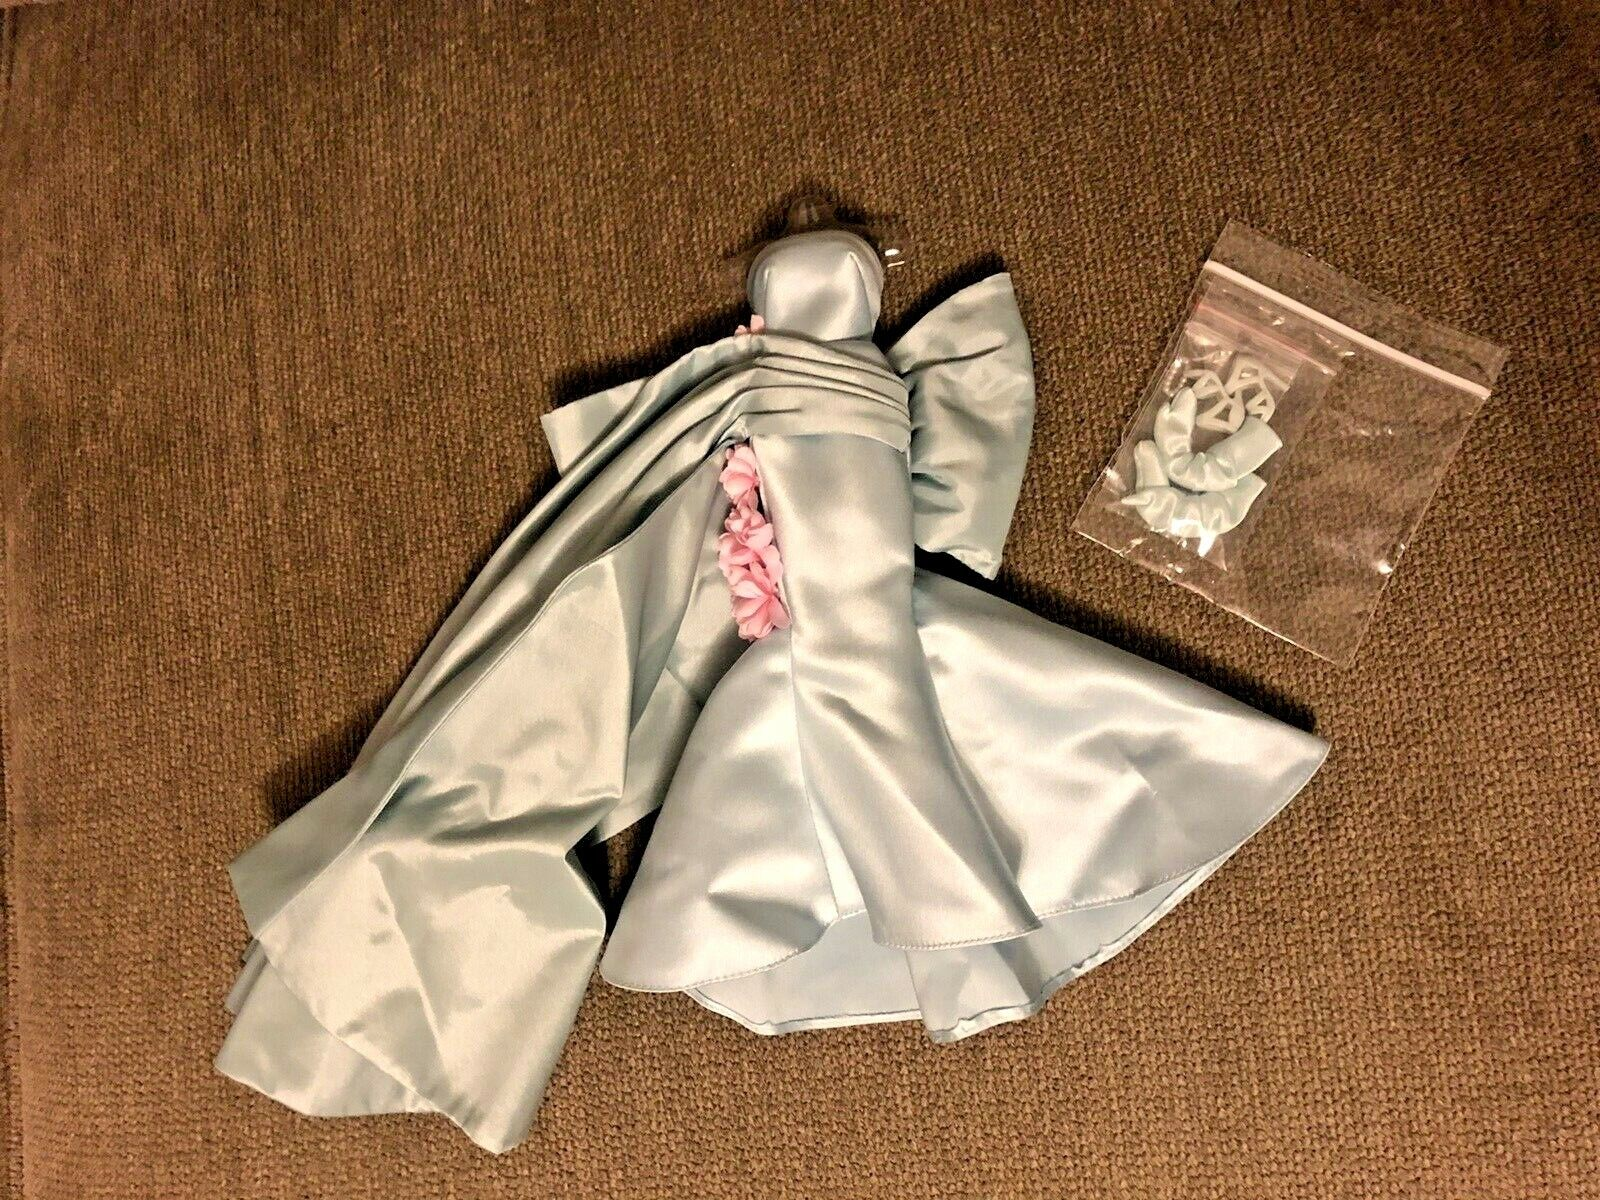 2000 Delphine Silkstone Barbie BFMC Outfit Only